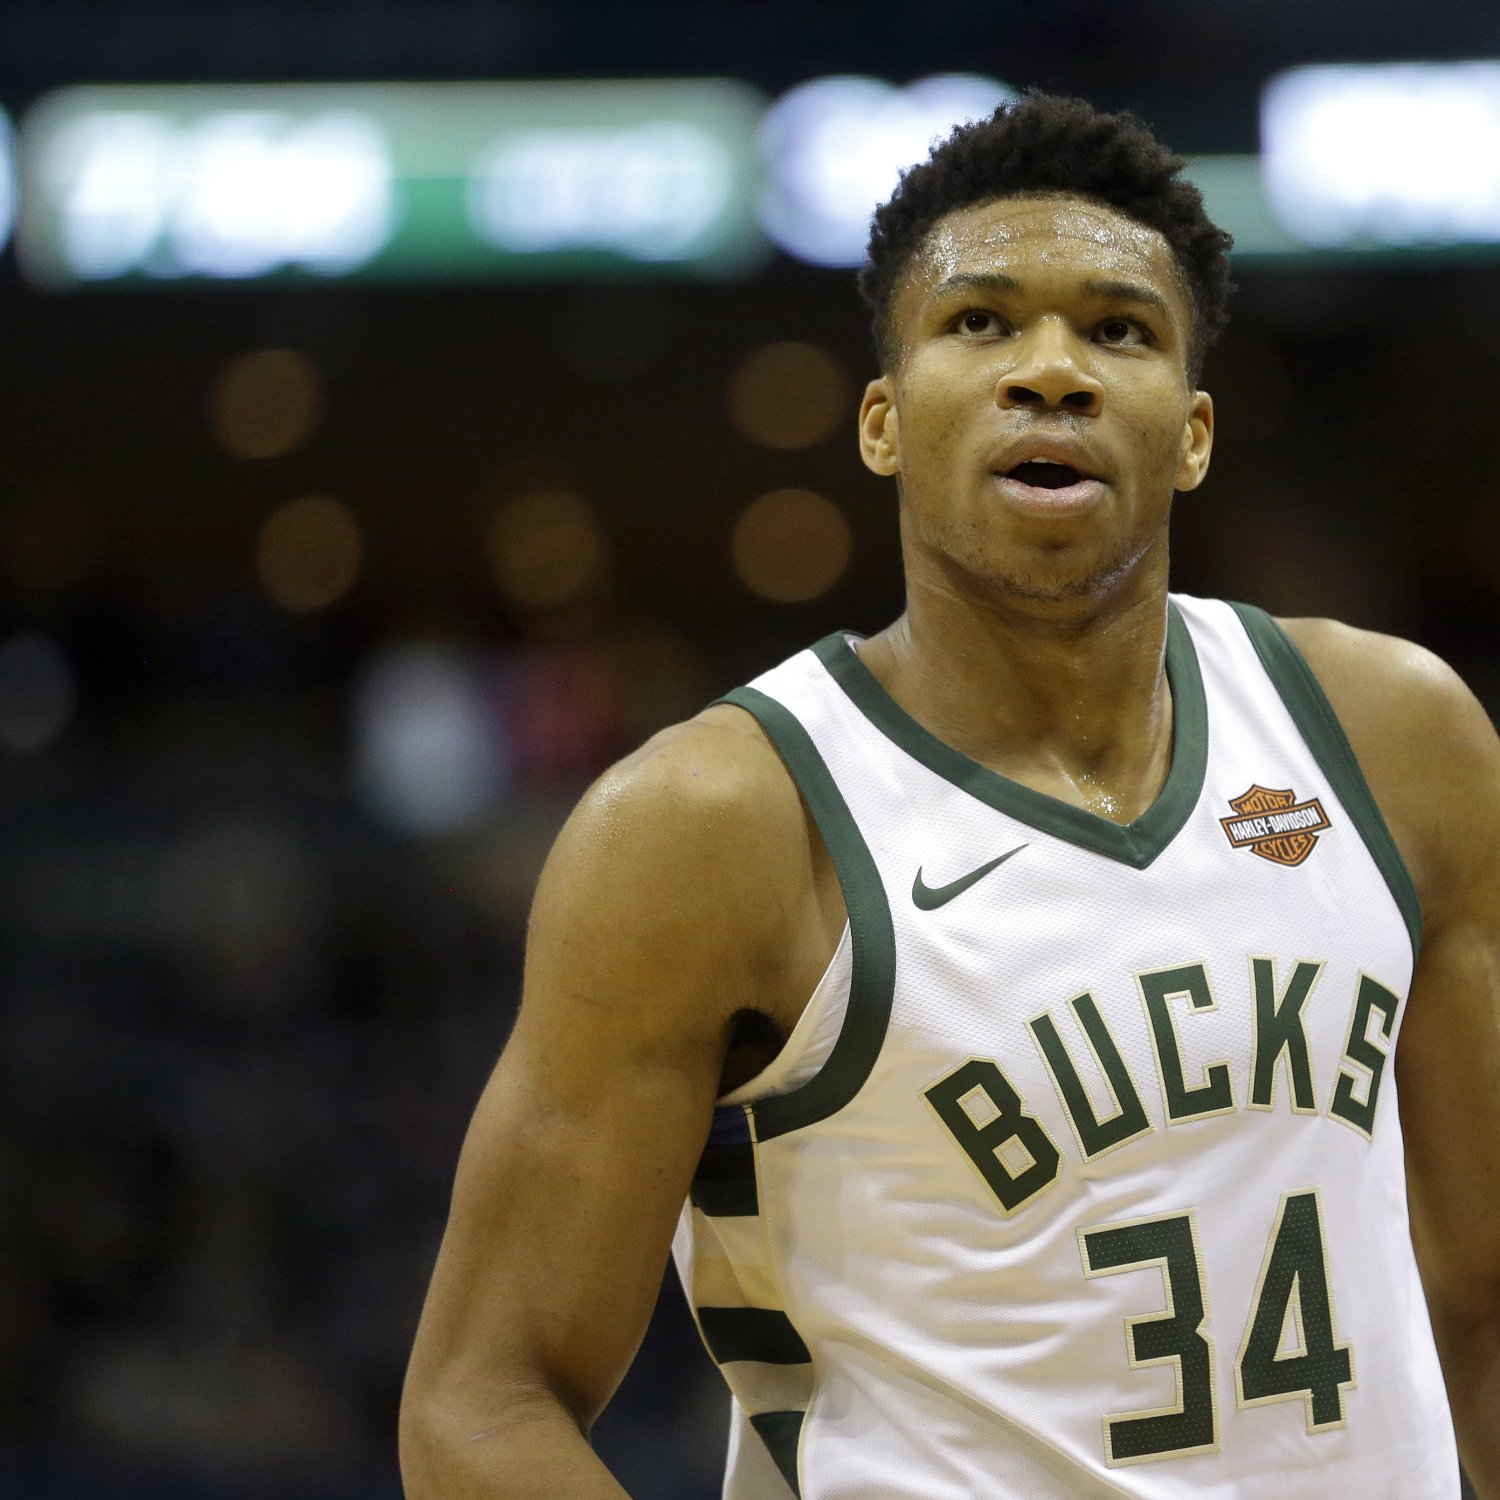 Giannis Antetokounmpo Would Pick LeBron James 1st as All-Star Captain